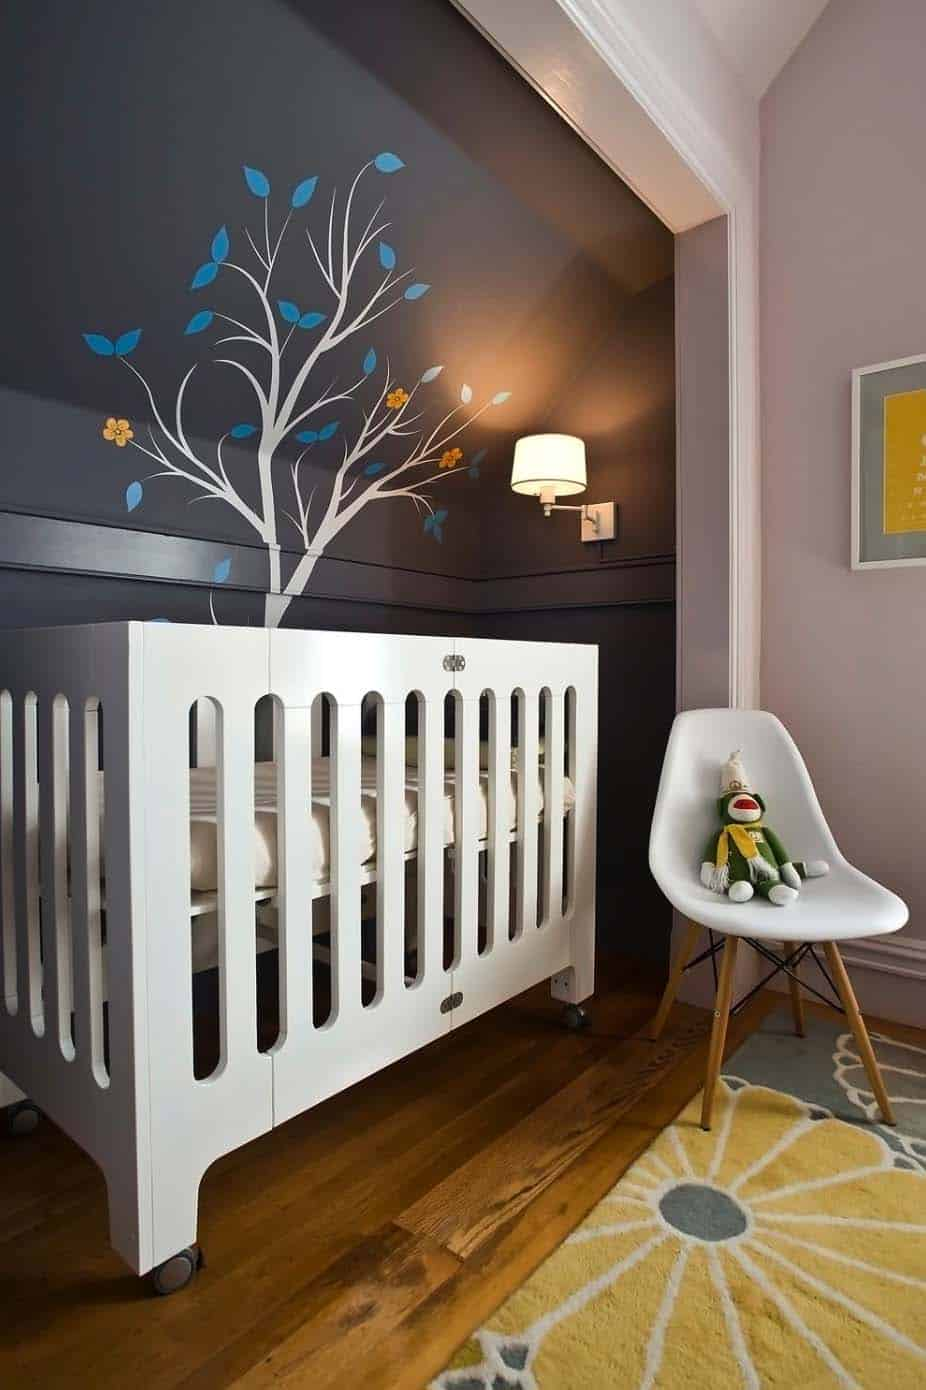 Stylish Nursery Decorating Ideas-27-1 Kindesign